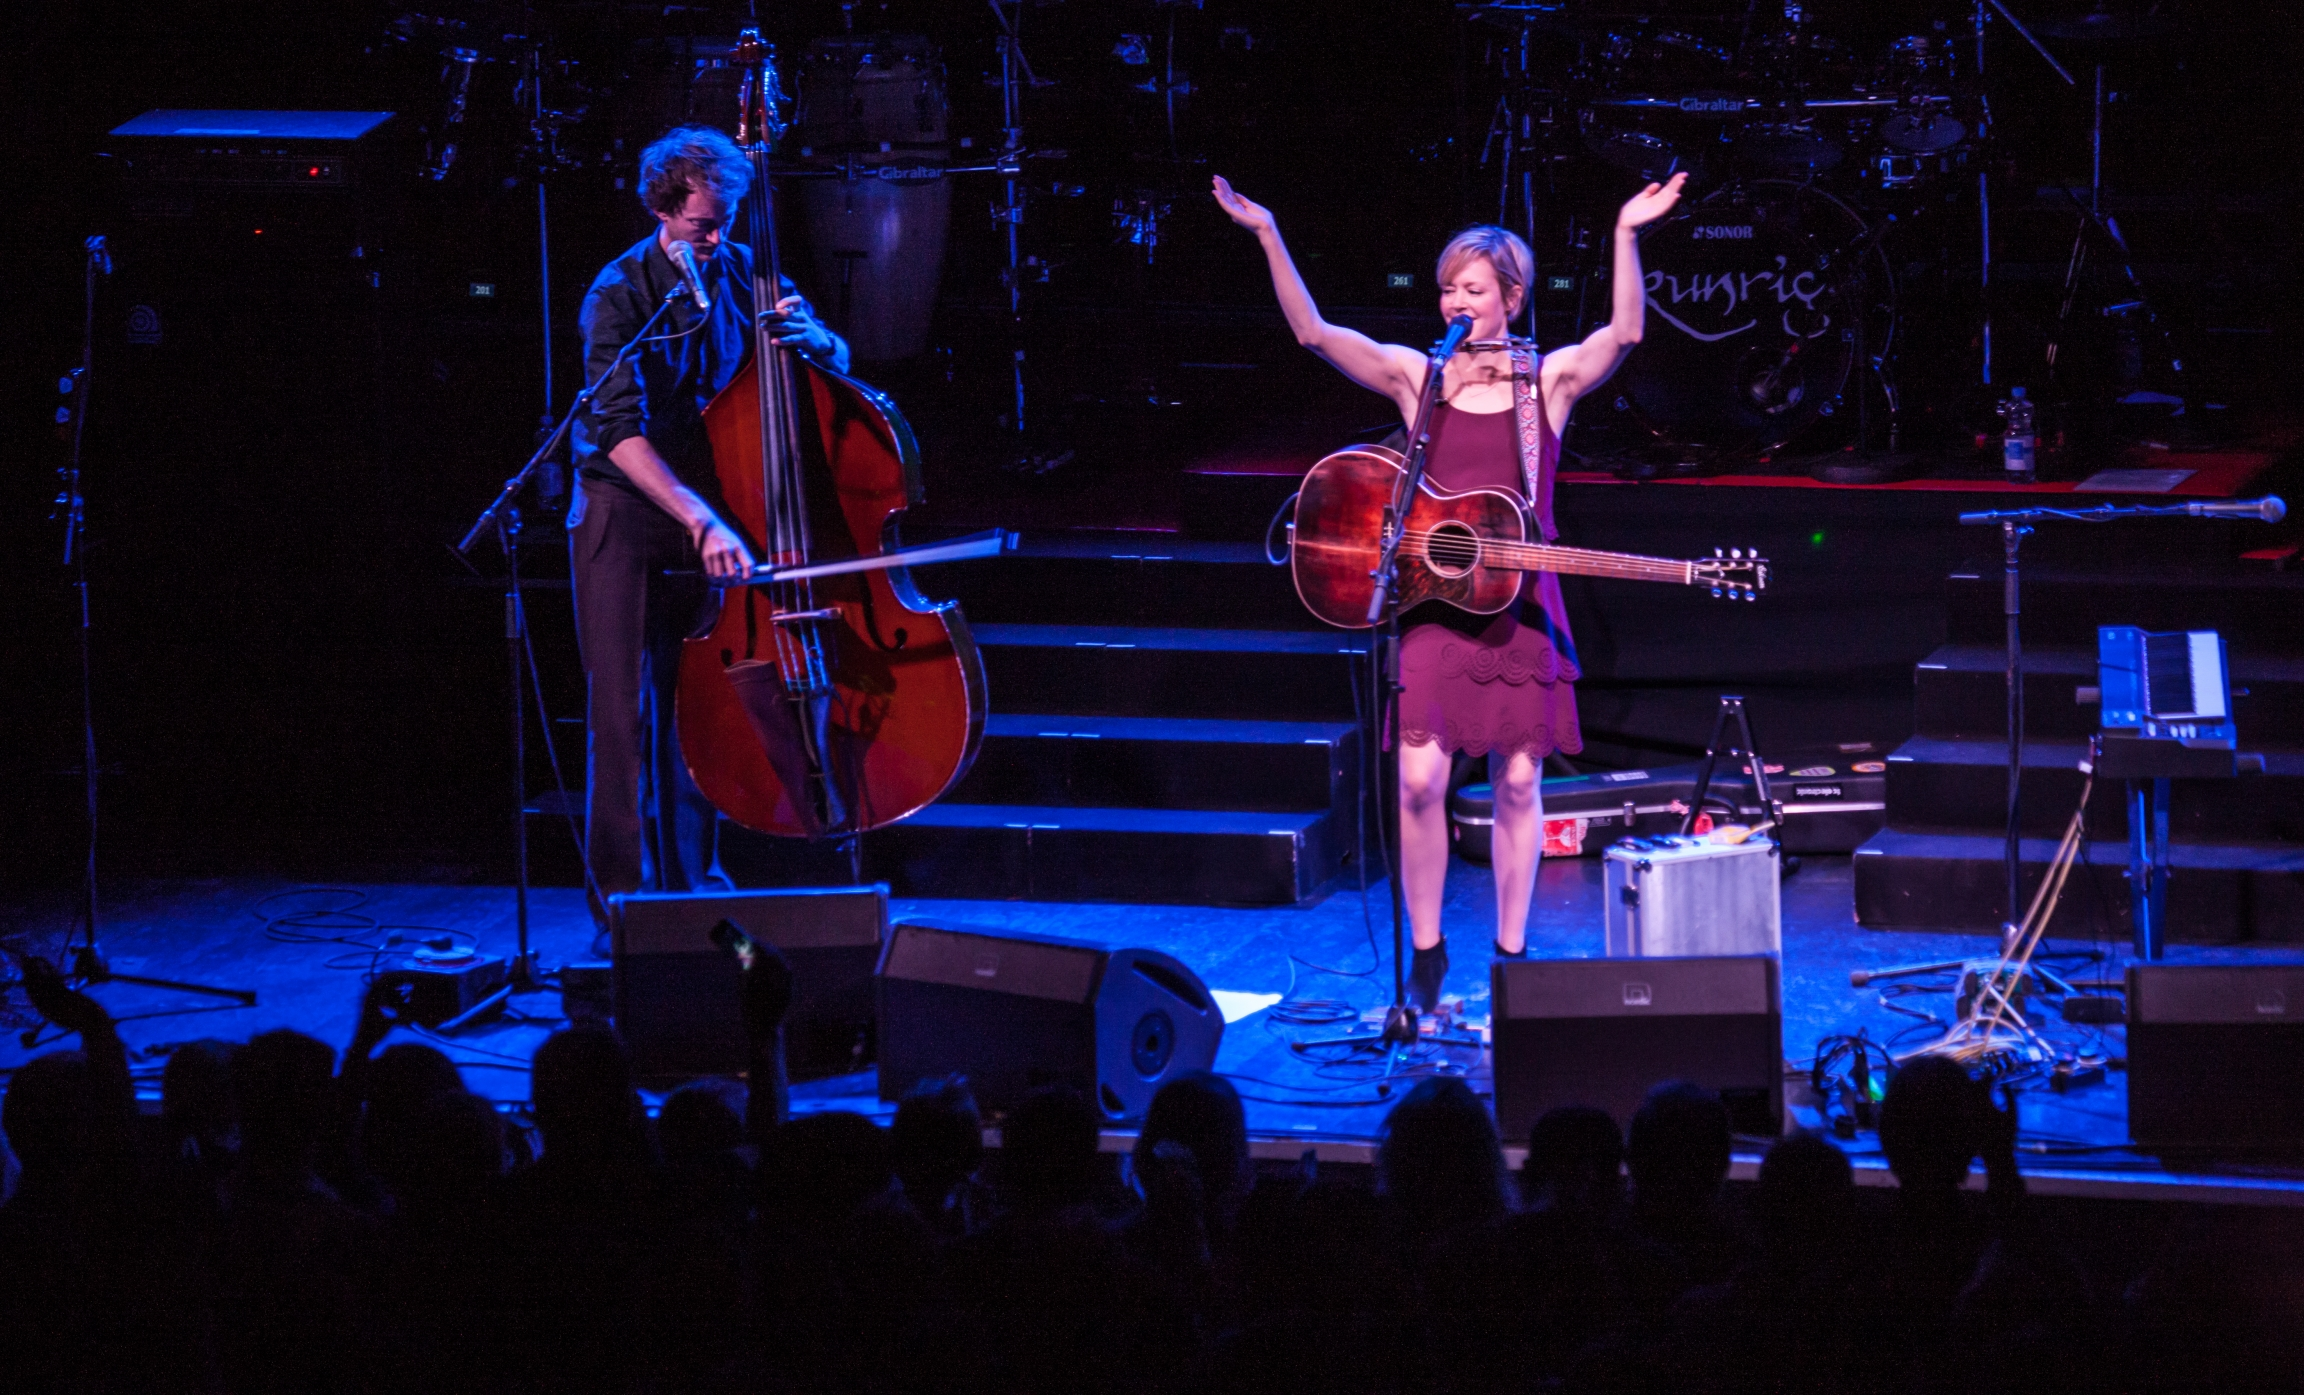 Emily Barker is shown onstage. More recently, the British musician streamed a live concert without an audience from a local music venue.